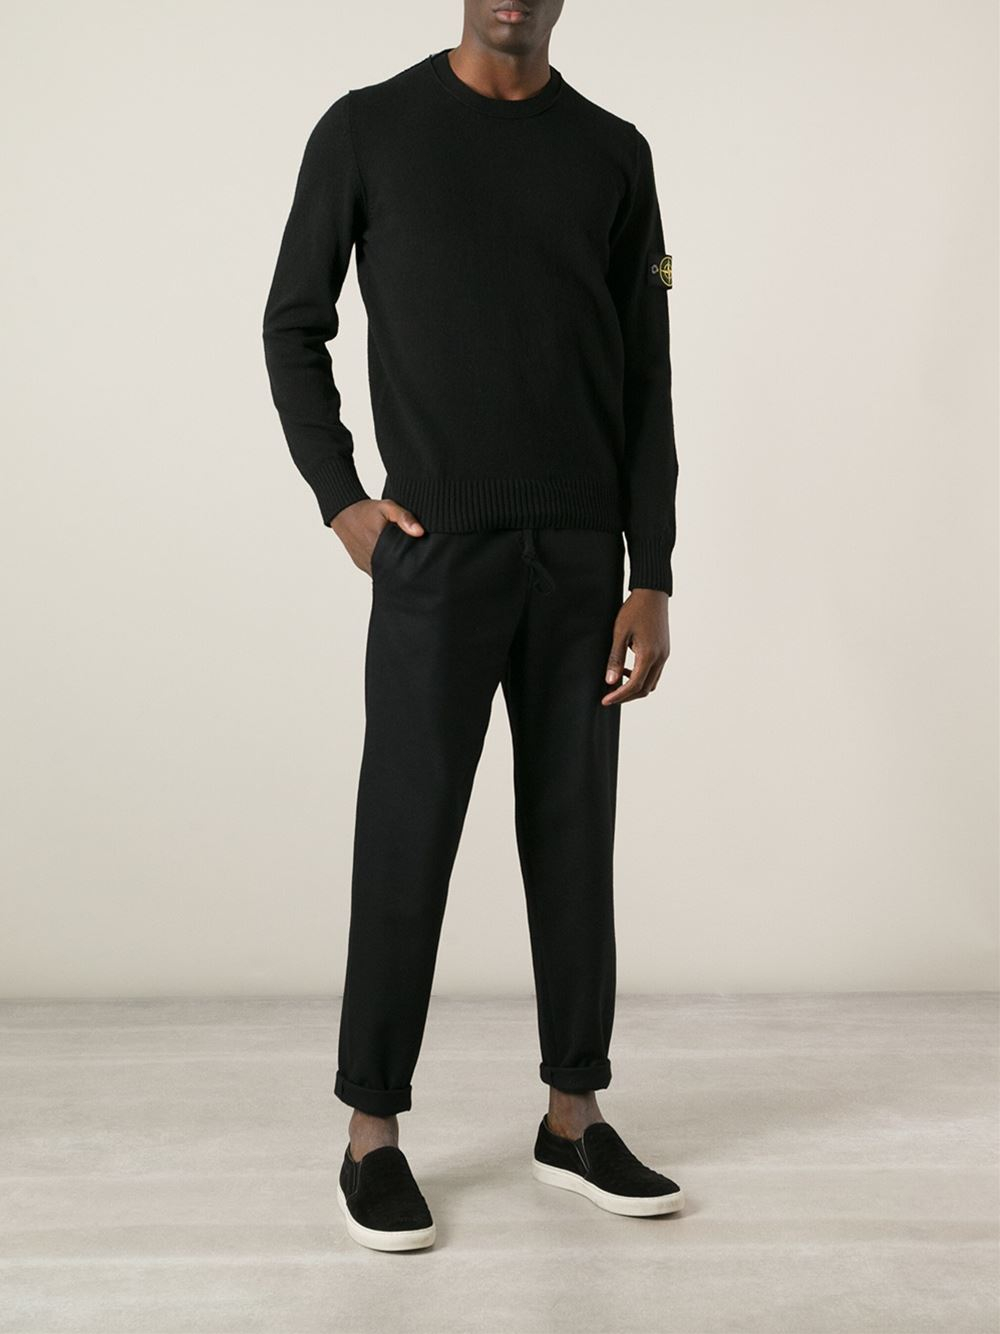 ab355eaf5be2d Stone Island Crew Neck Sweater in Black for Men - Lyst